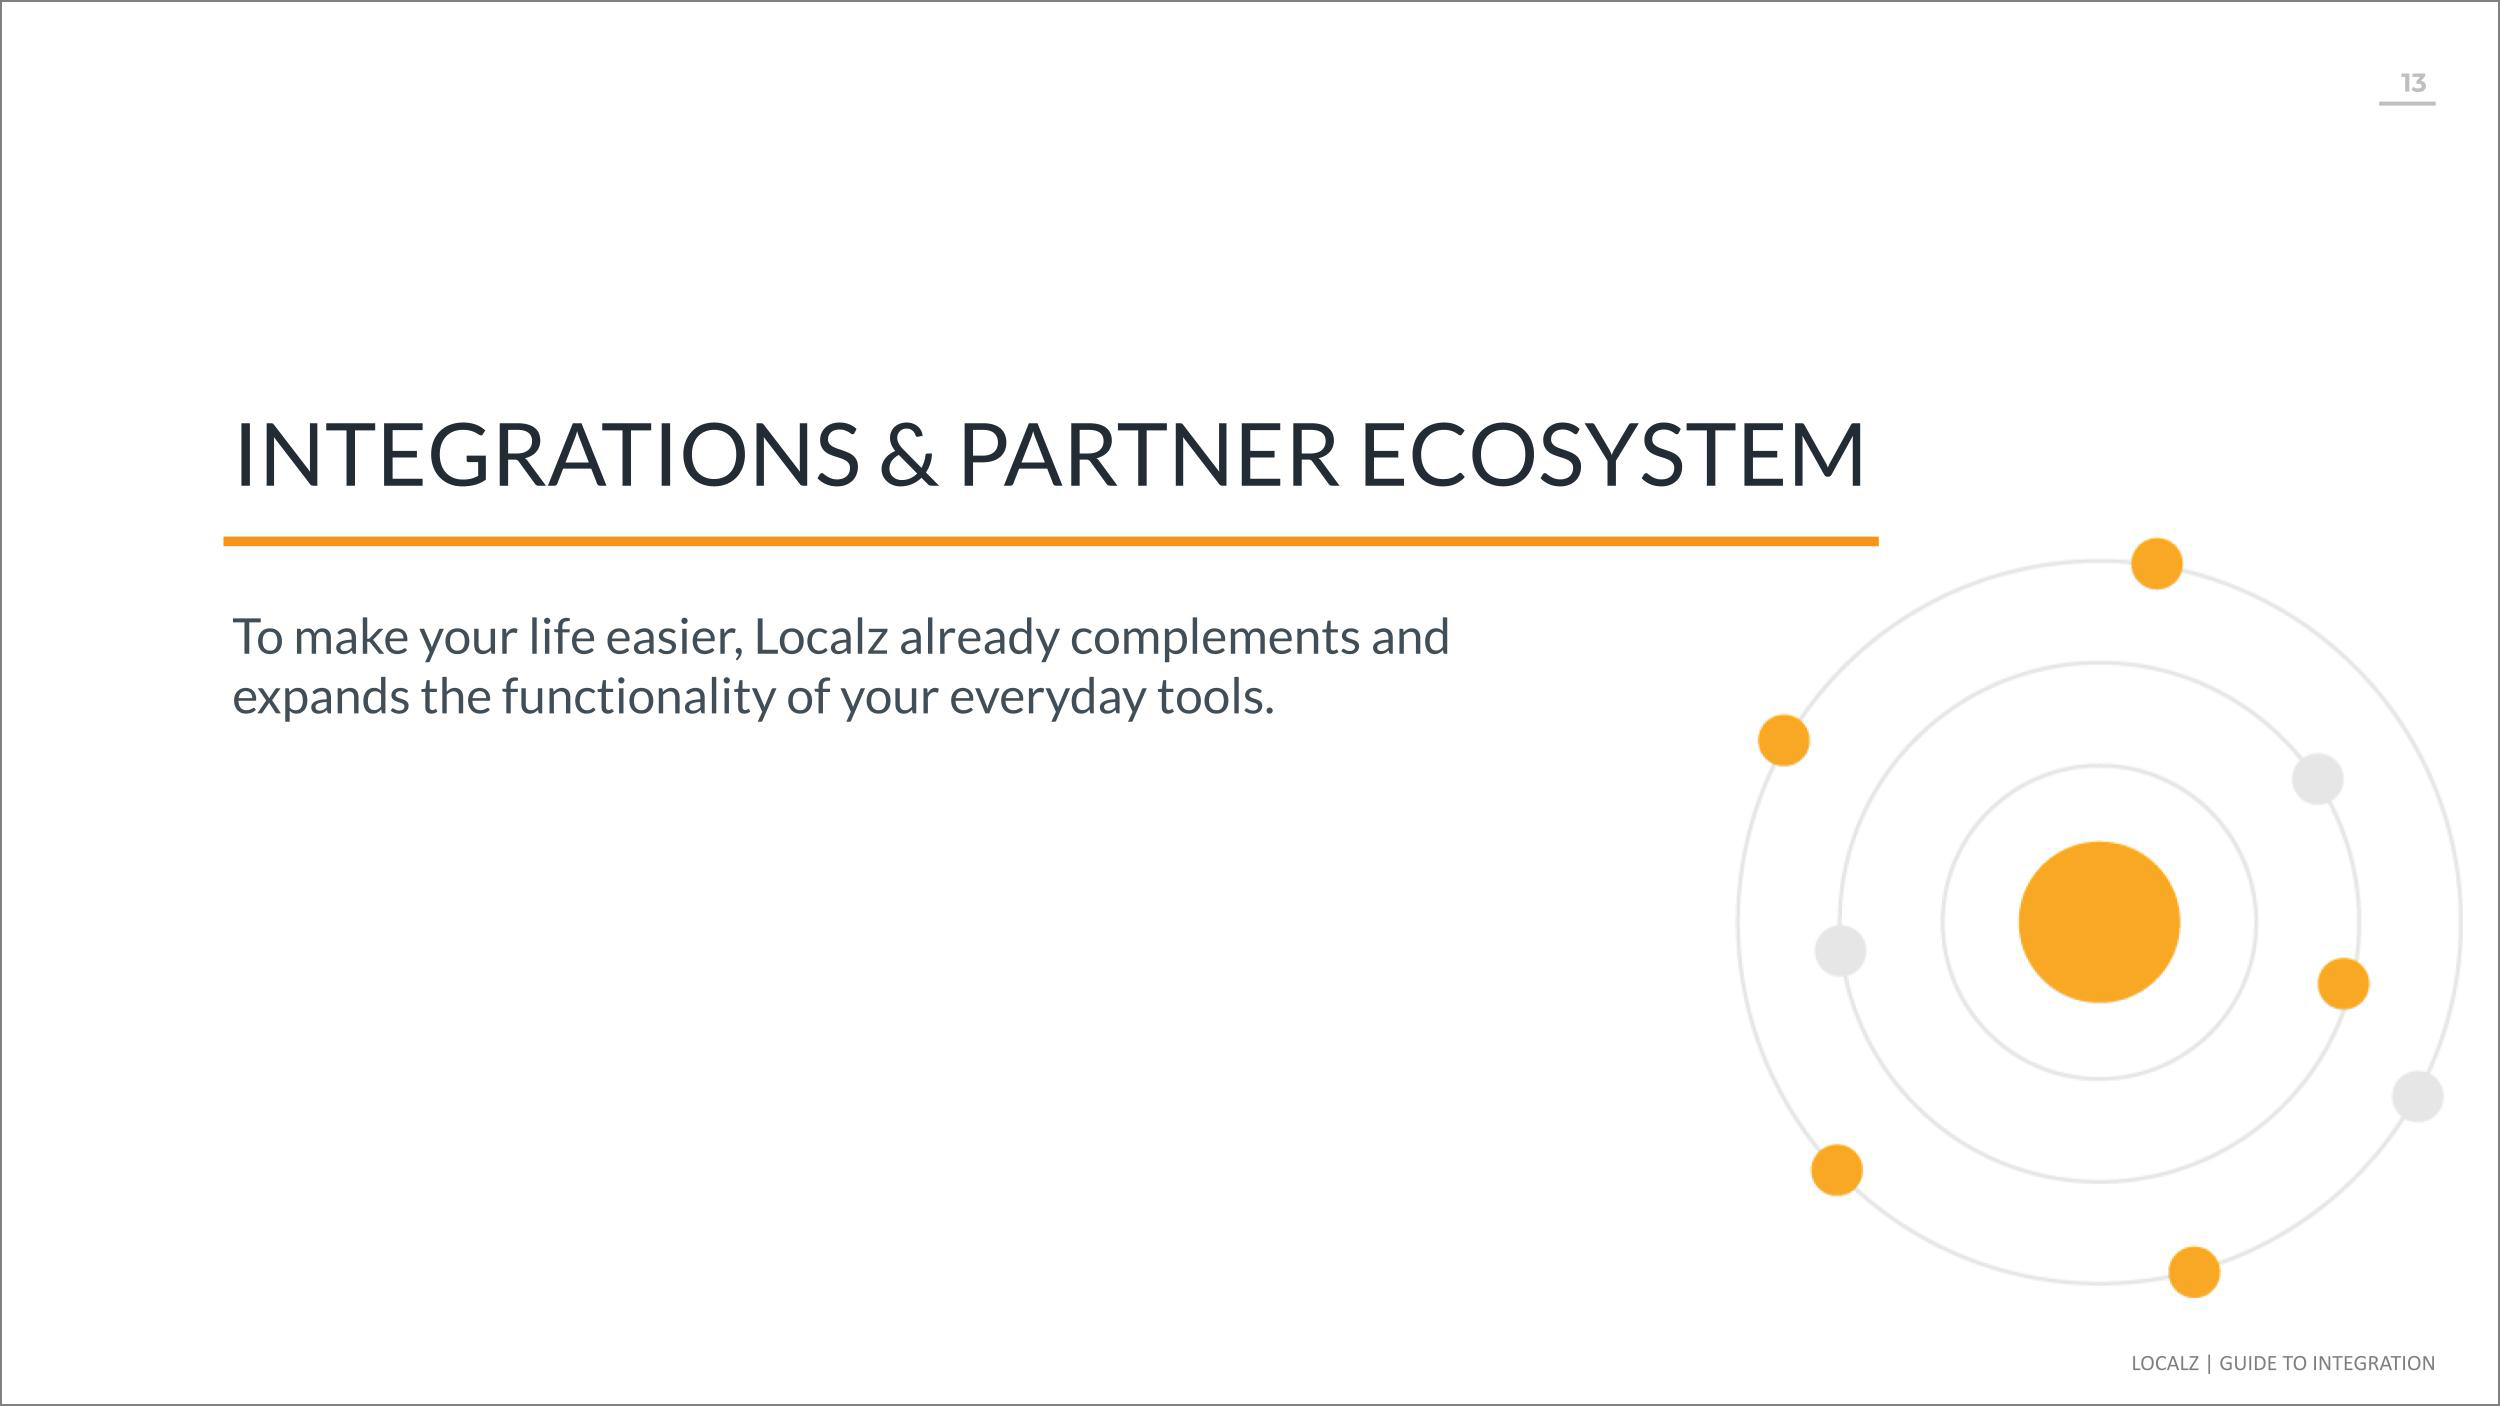 Localz partners and integrations